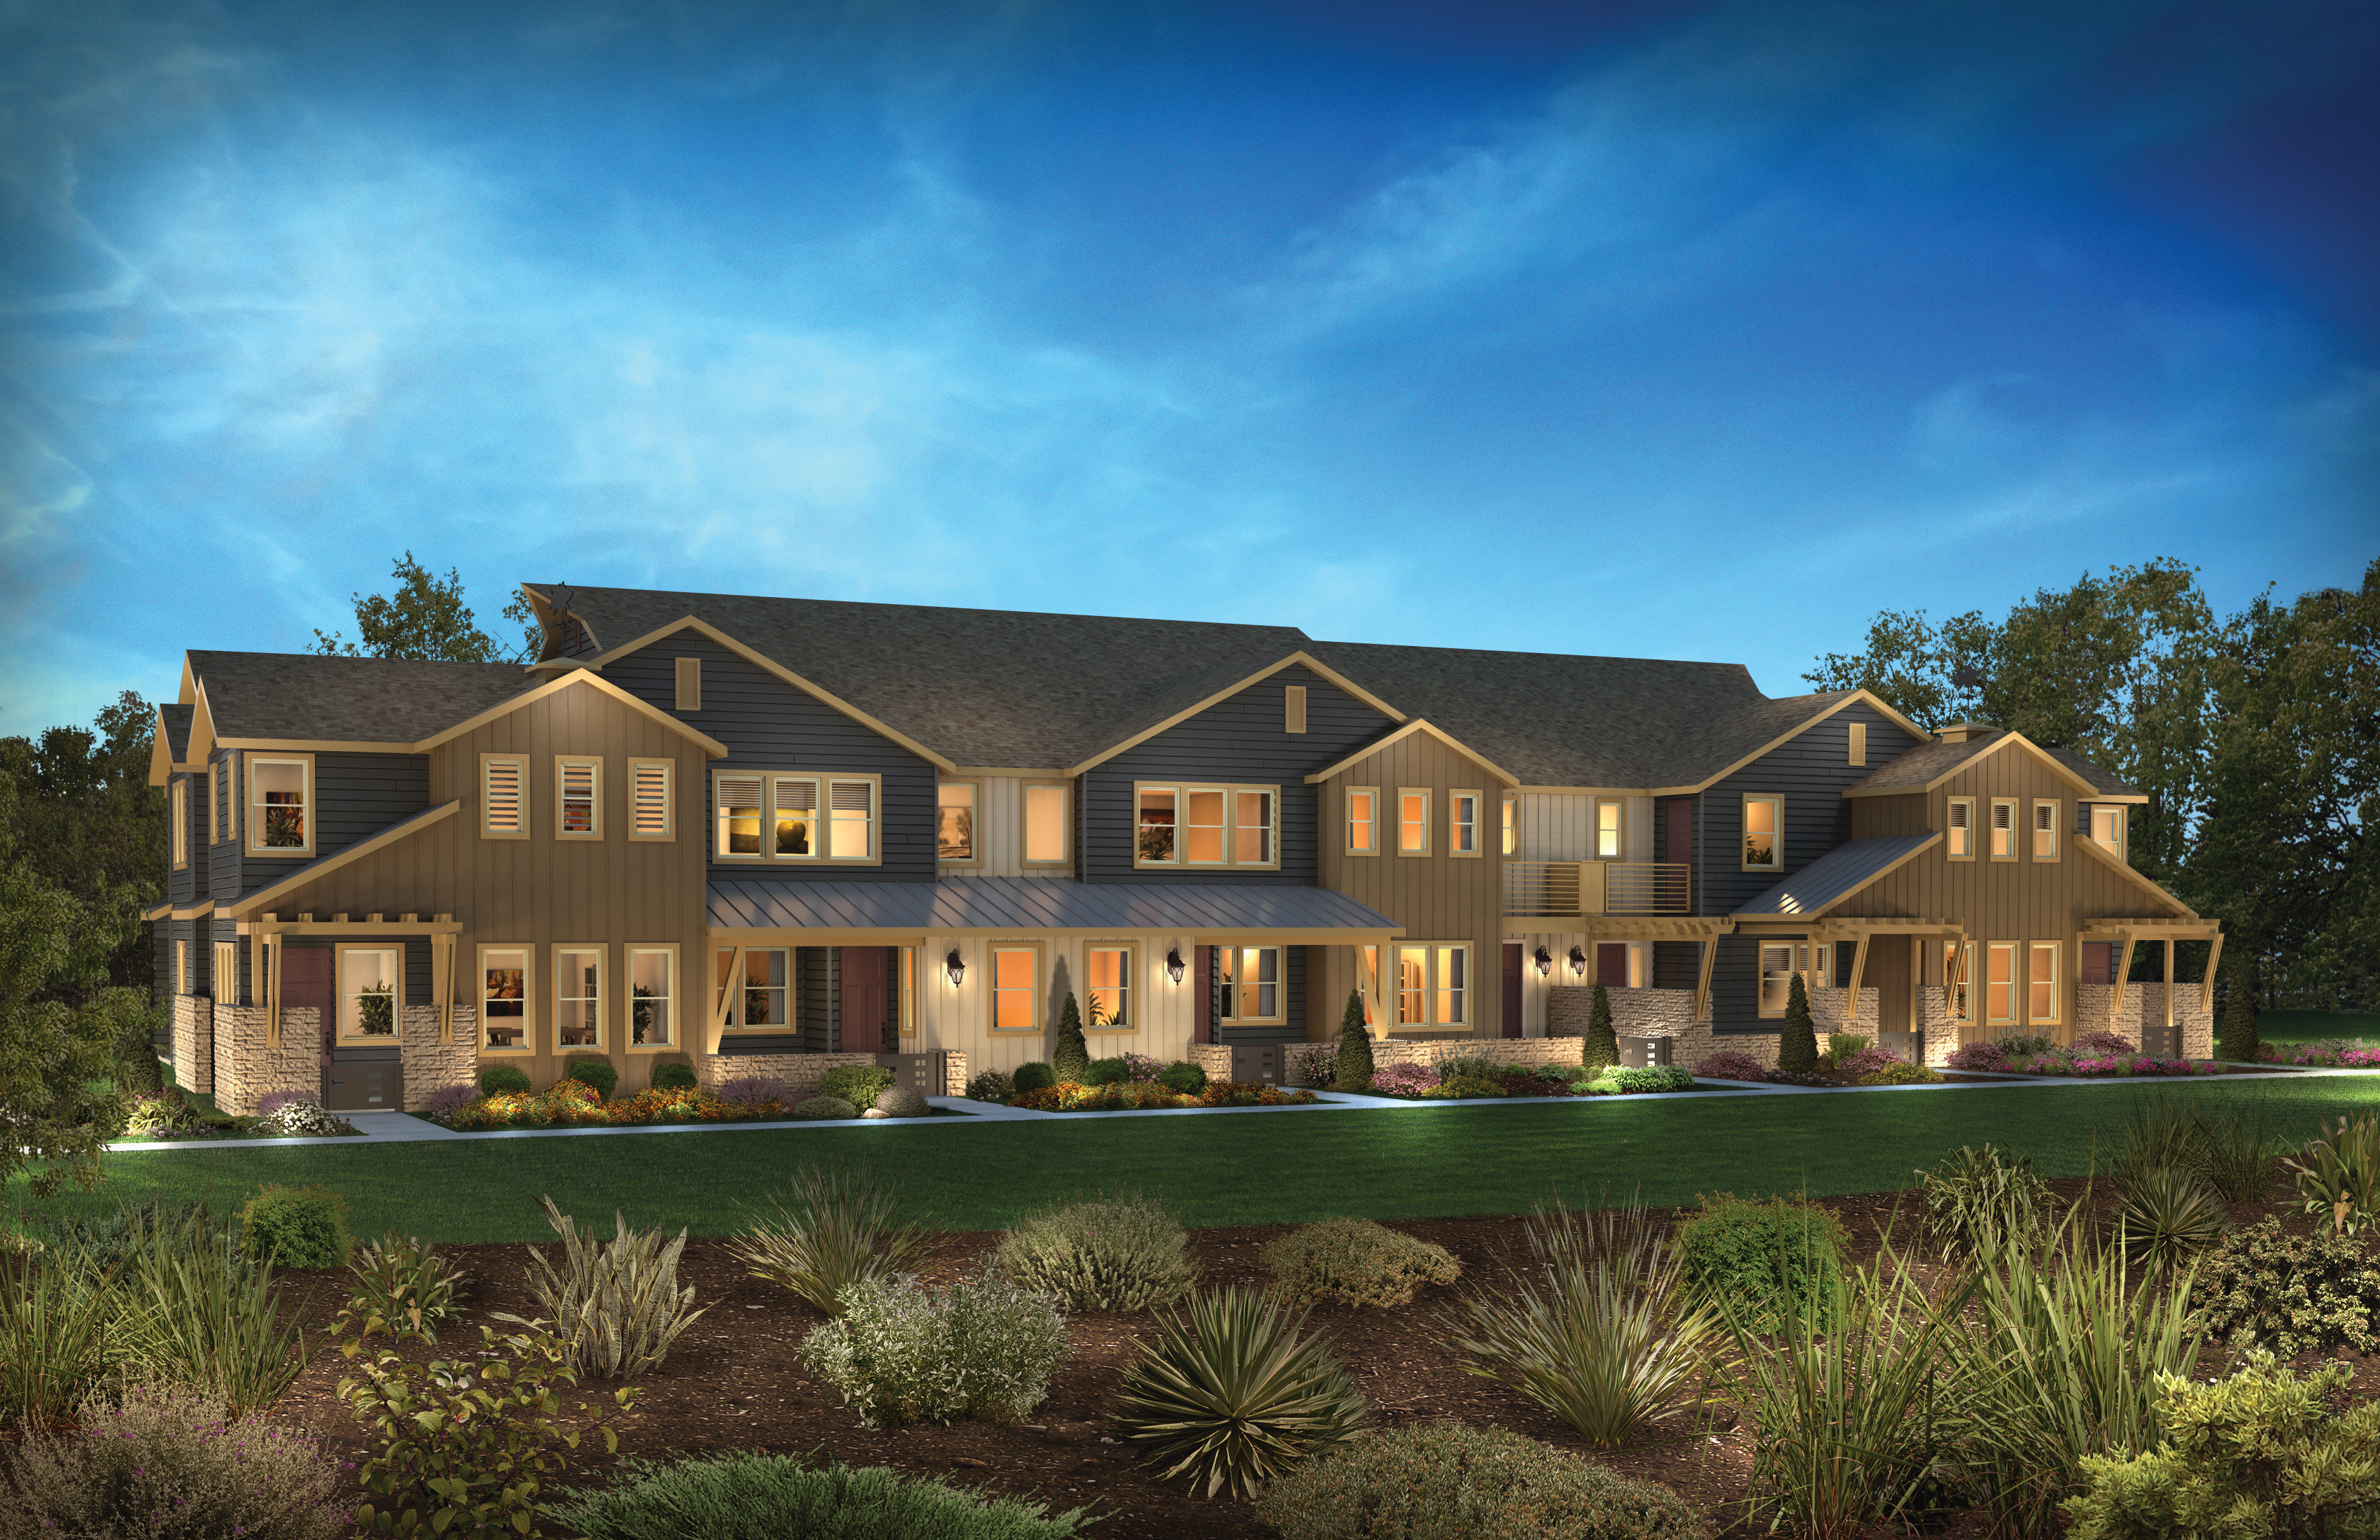 Shea Home Tranquility townhomes at Sage